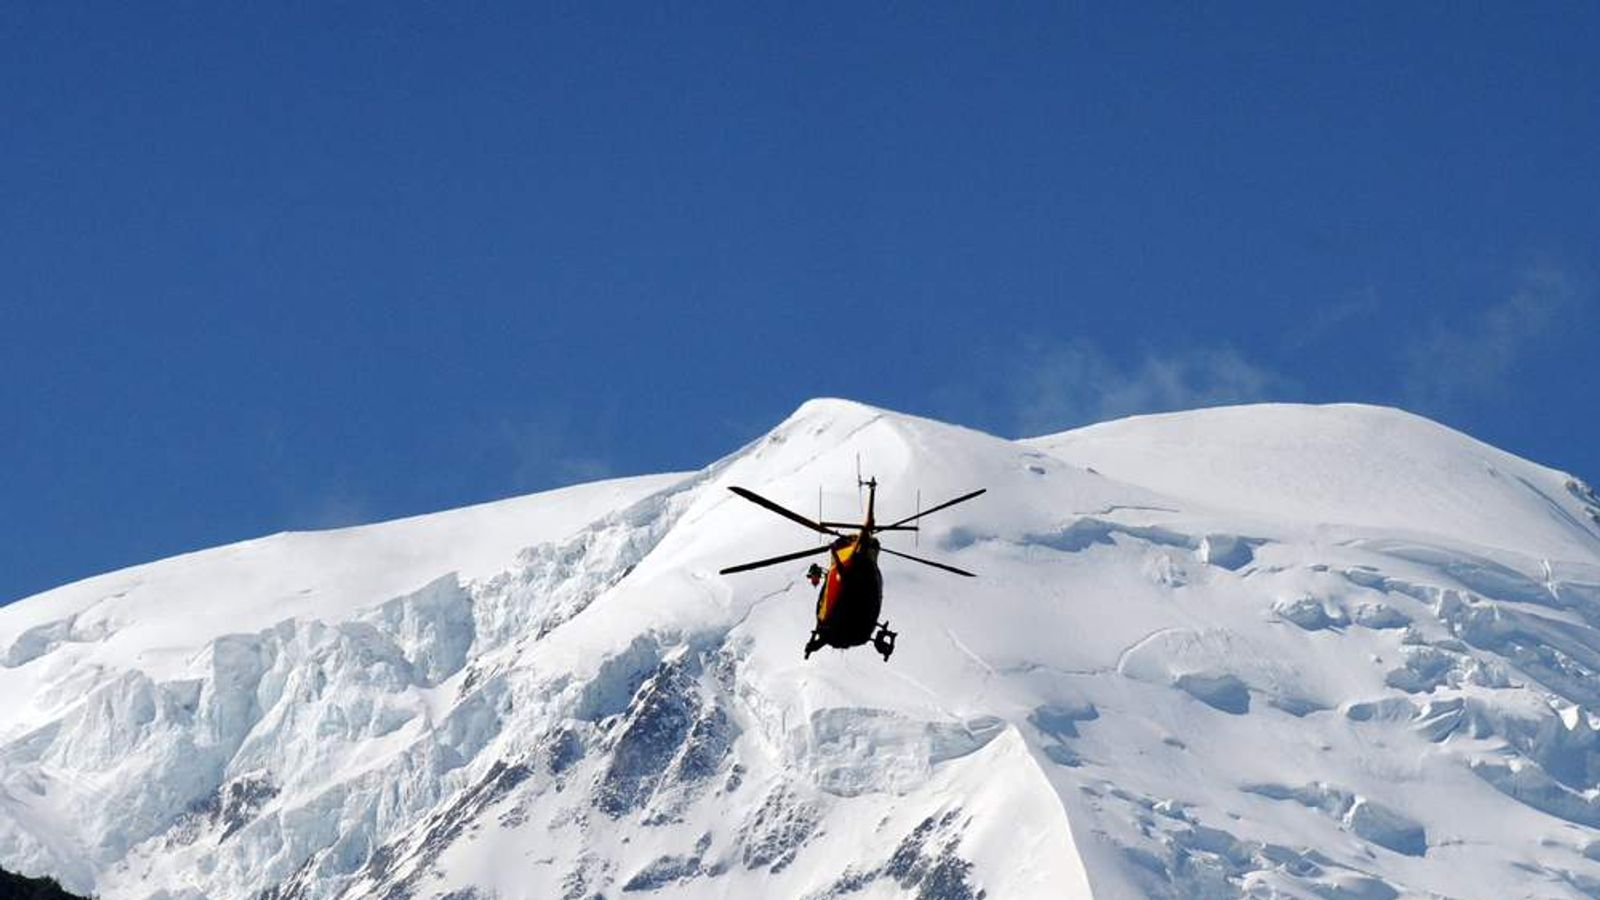 A rescue crew of the emergency services flies over the Mont Blanc massif in an helicopter on July 12, 2012 in Chamonix, in the French Alps, to the Mont Maudit, a mountain in the Mont Blanc Massif where an avalanche killed at least six people